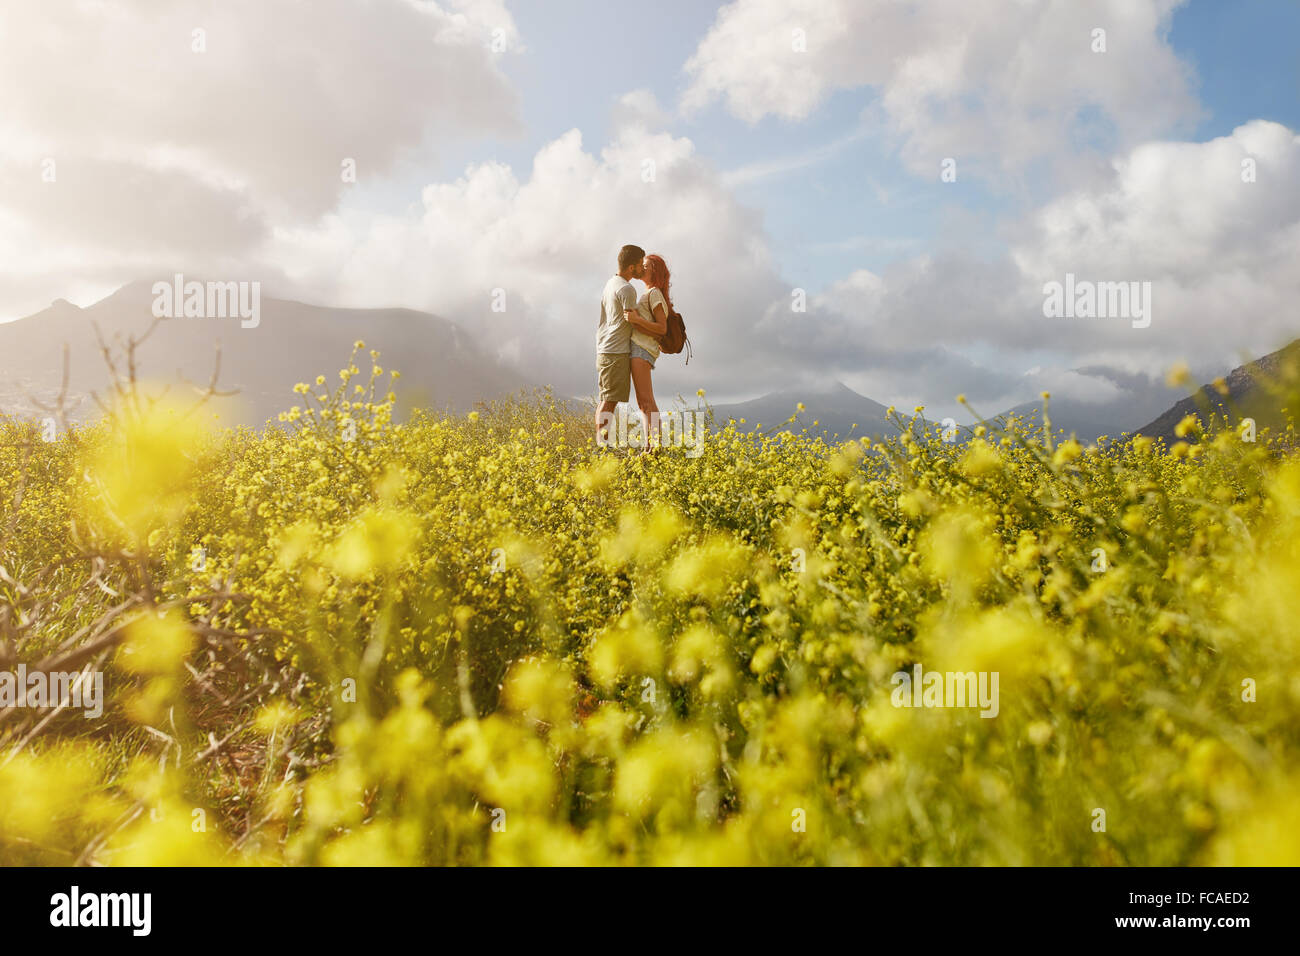 Romantic young couple embracing and kissing on a sunny day outdoors. - Stock Image